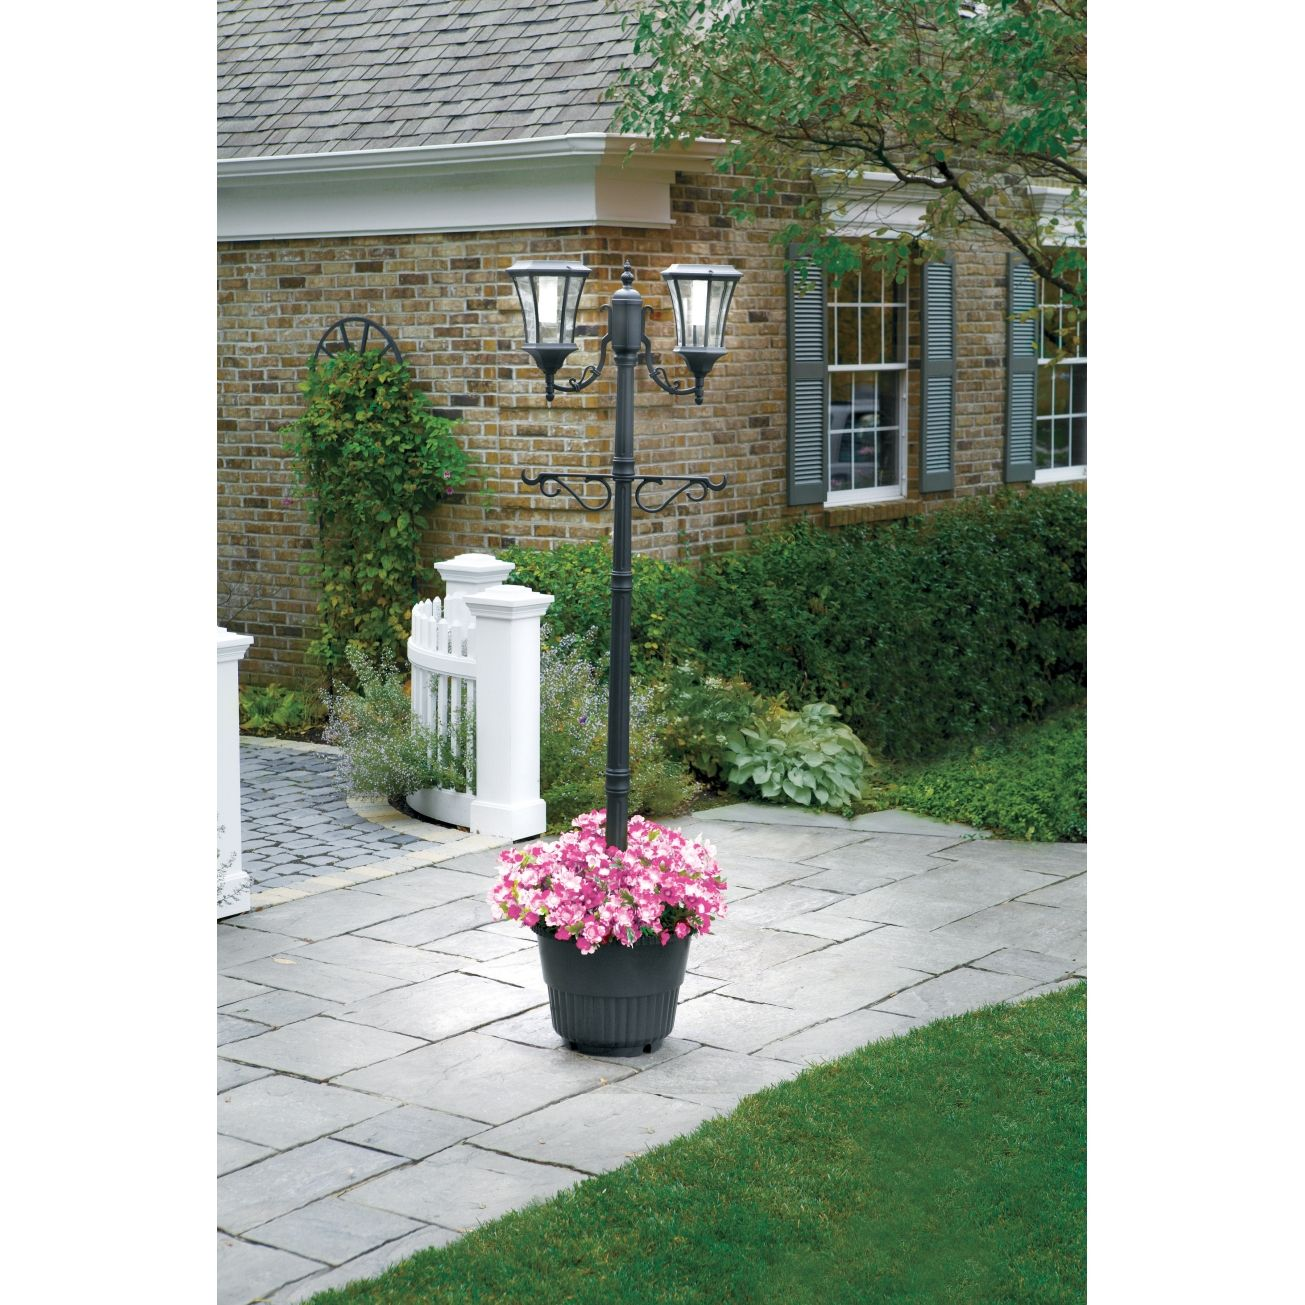 sunergy solar lamp post with planter base 50400356 outdoor. Black Bedroom Furniture Sets. Home Design Ideas